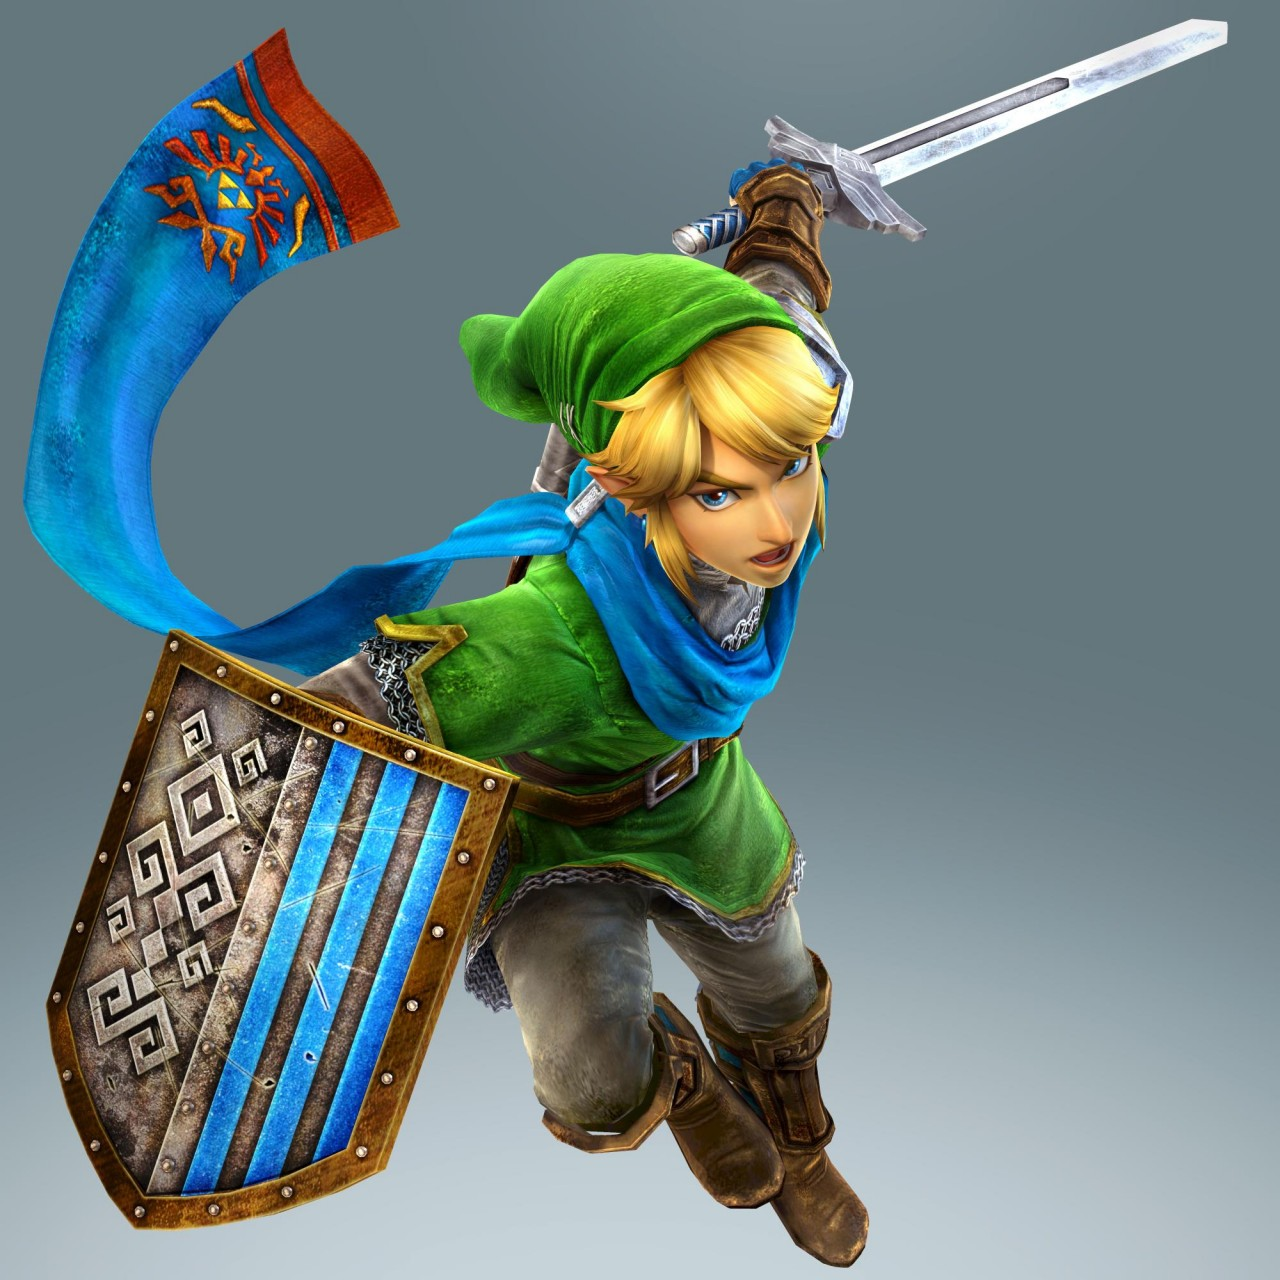 Hyrule-Warriors-49-1280x1280